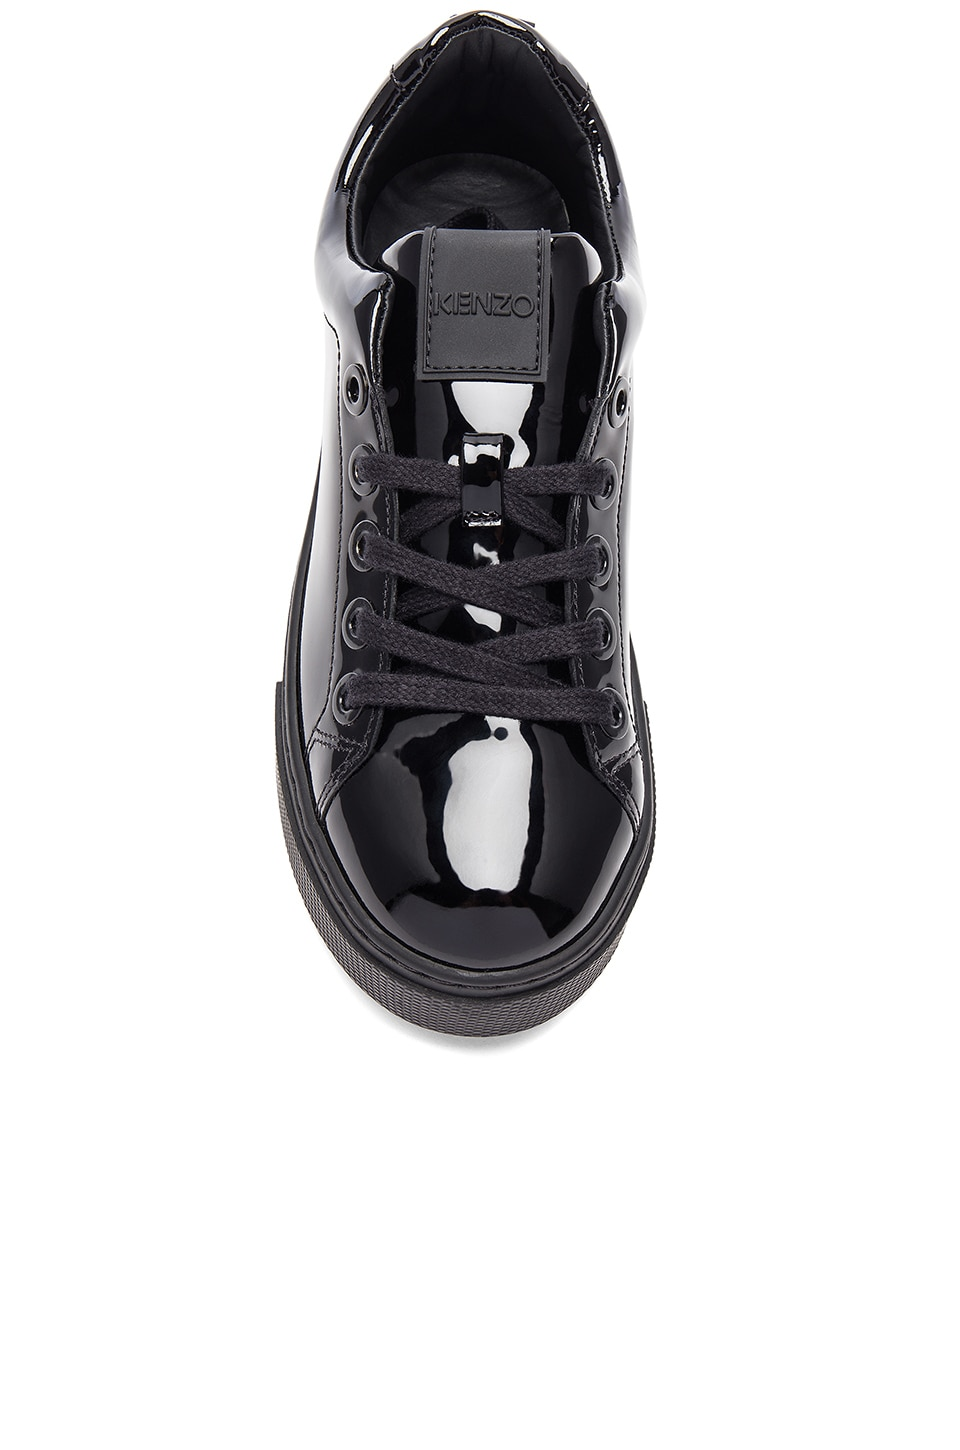 KENZO K-Lace Platform Sneakers In Black.